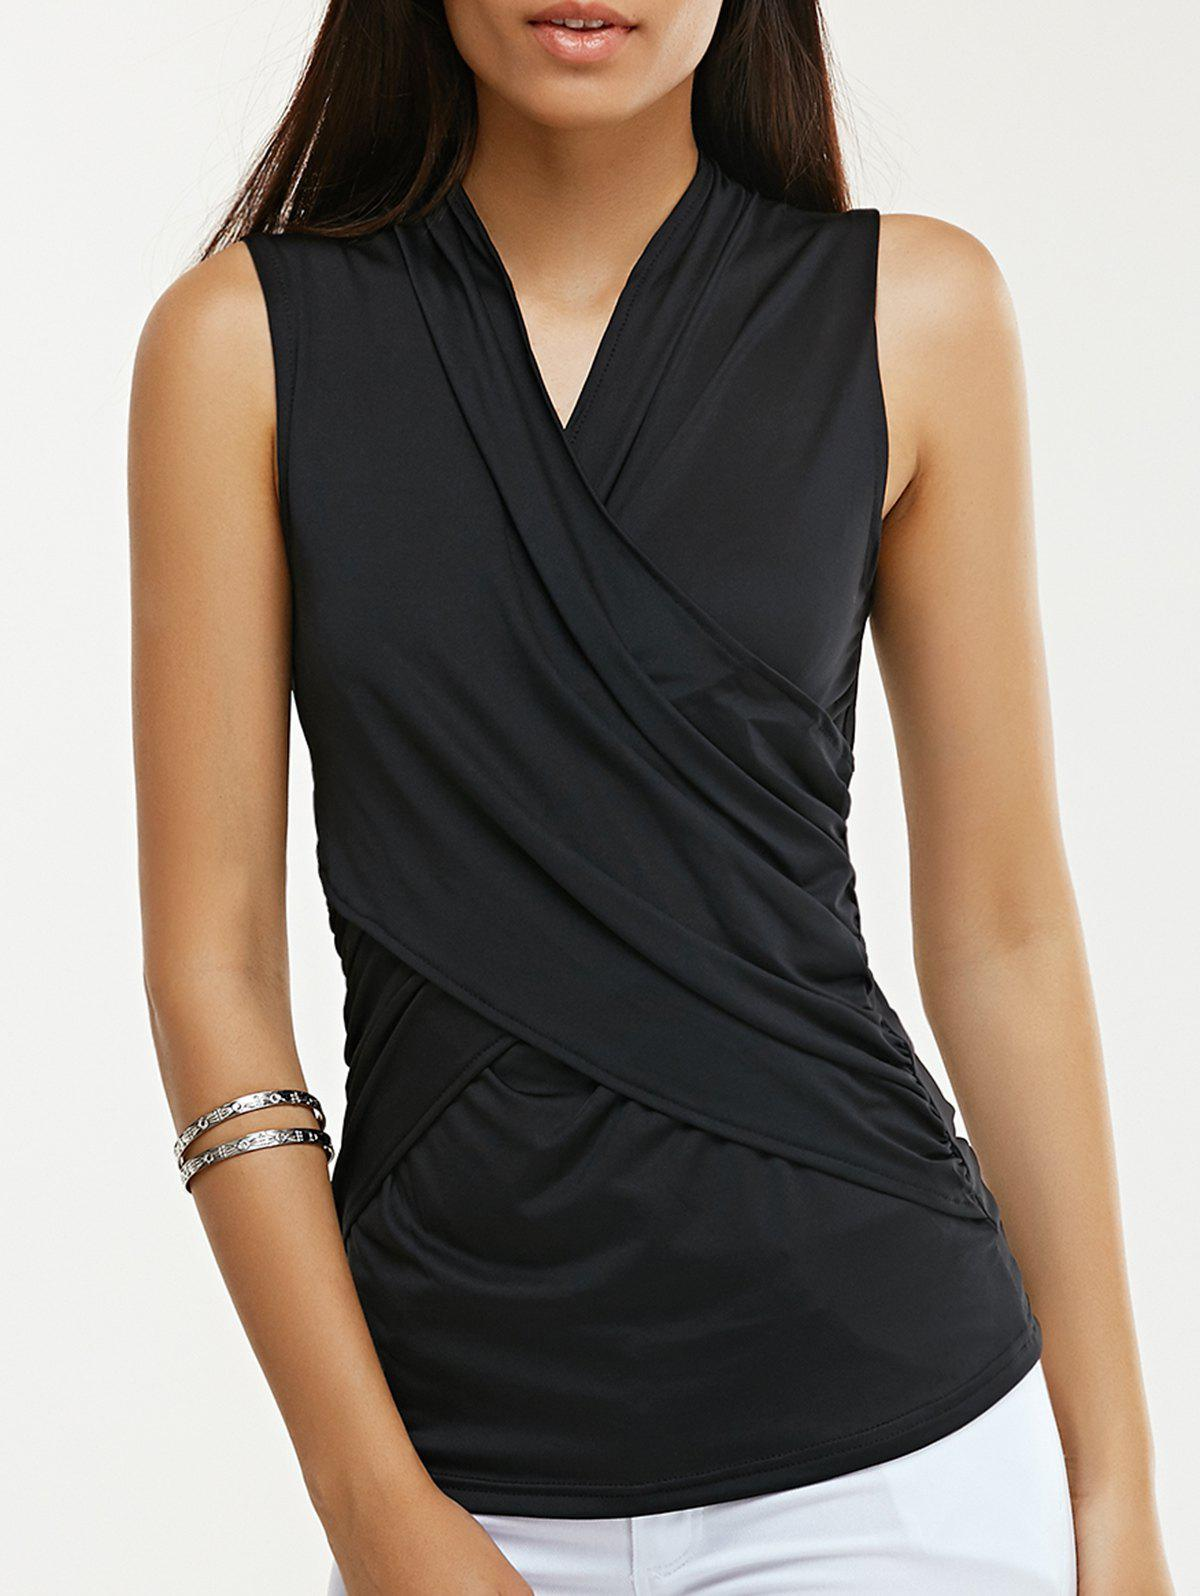 Brief Women's Plunging Neck Twist Pure Color Tank Top - BLACK XL